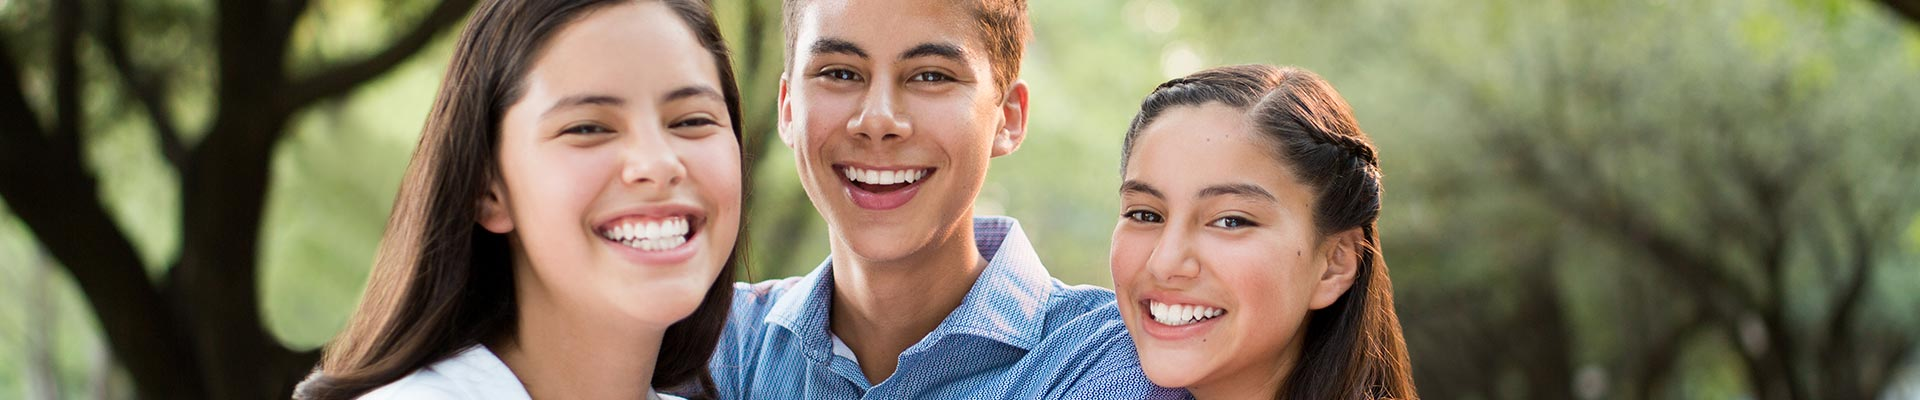 New Patients Journey Orthodontics Sioux Falls and Yankton, SD